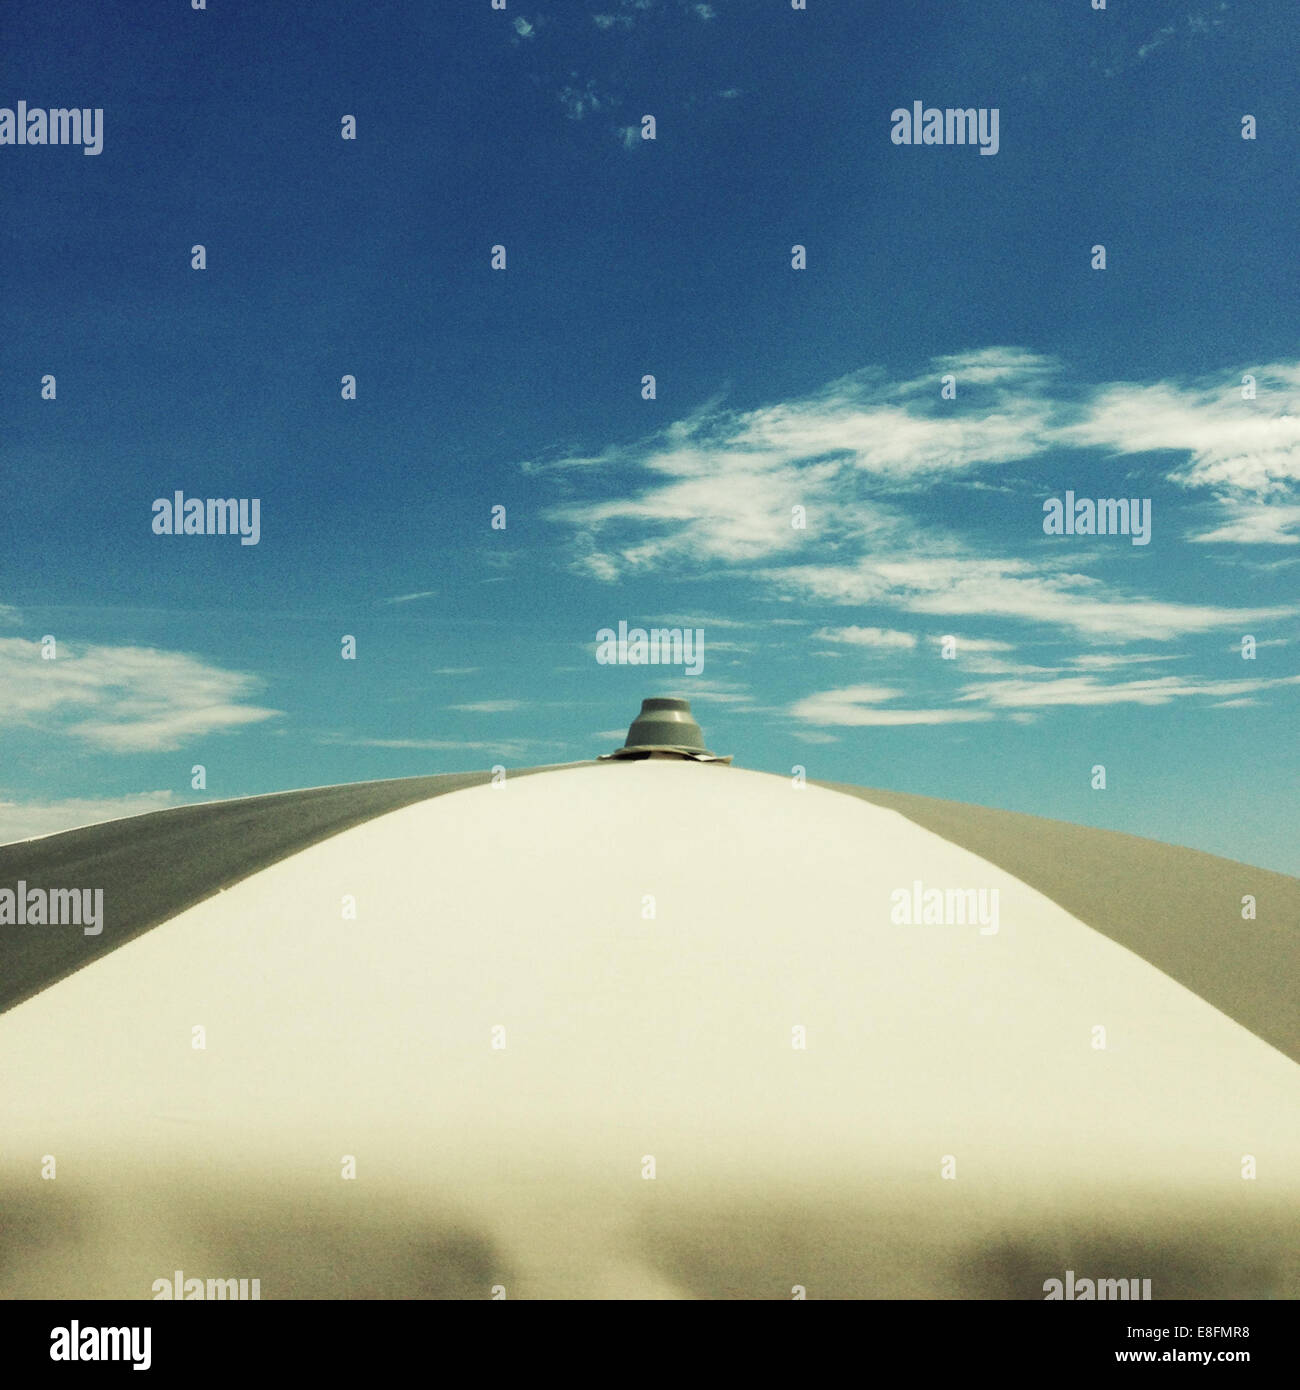 Top of umbrella - Stock Image